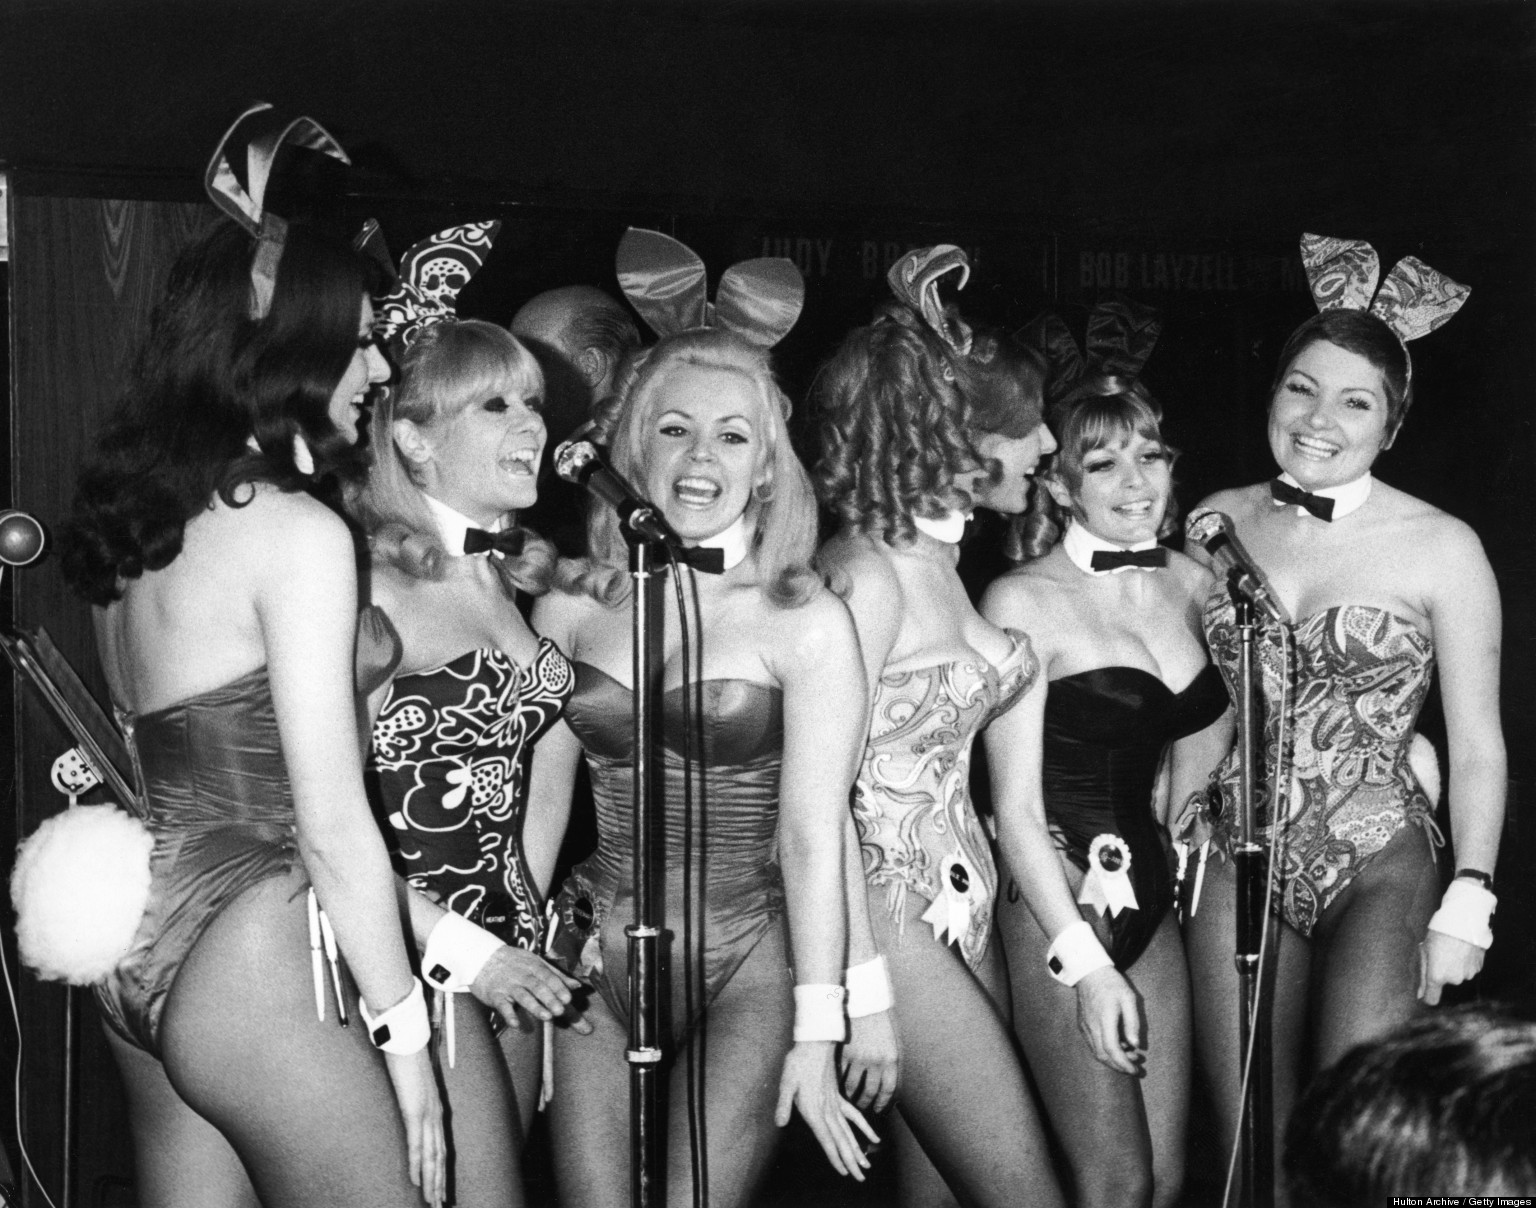 LOOK: Vintage Photos Of Playboy Bunnies